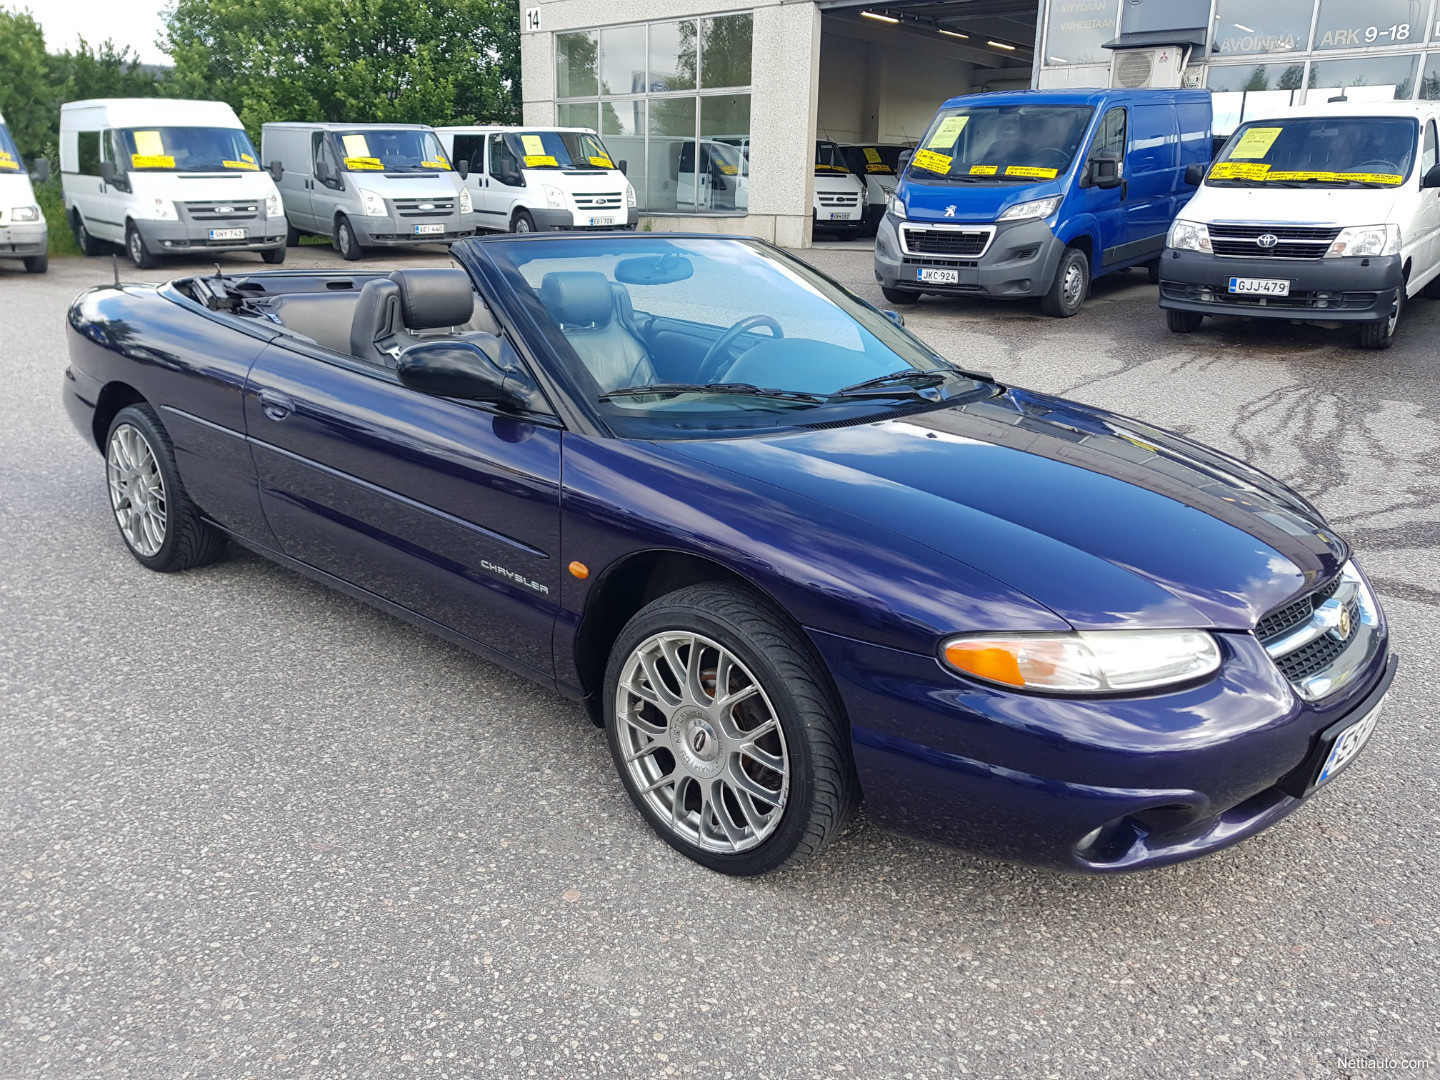 chrysler stratus 2 5 lx v6 cabrio a convertible 1998 used vehicle nettiauto. Black Bedroom Furniture Sets. Home Design Ideas